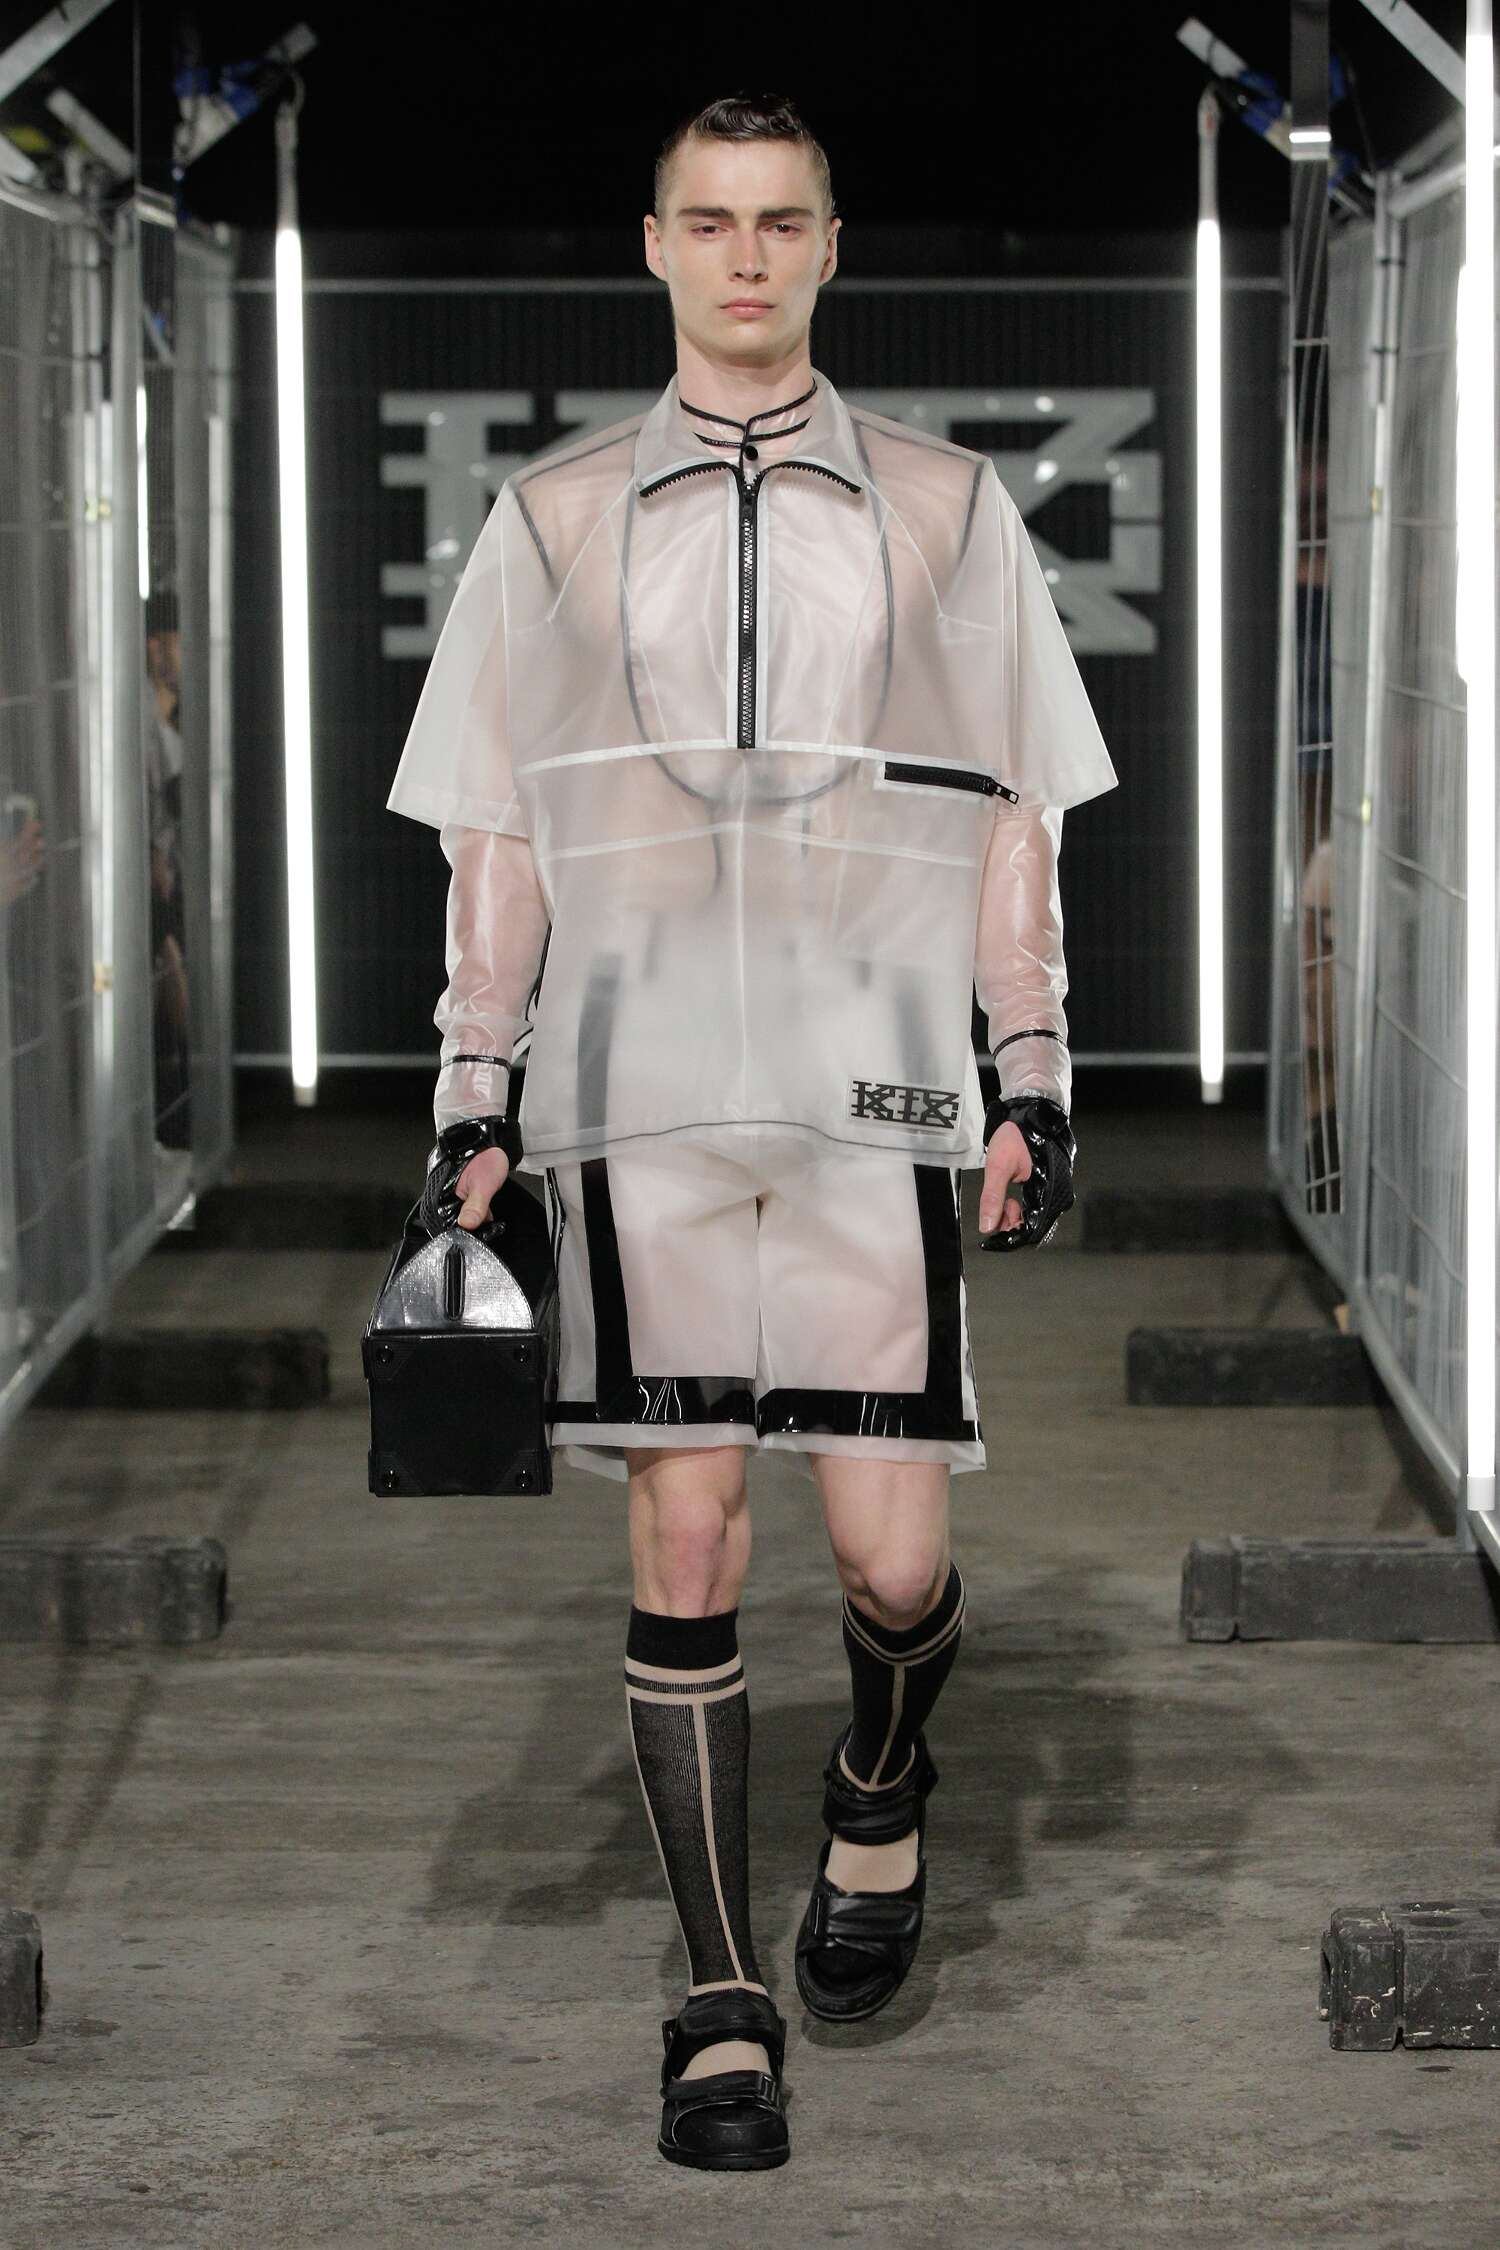 Fashion Menswear KTZ Collection Catwalk